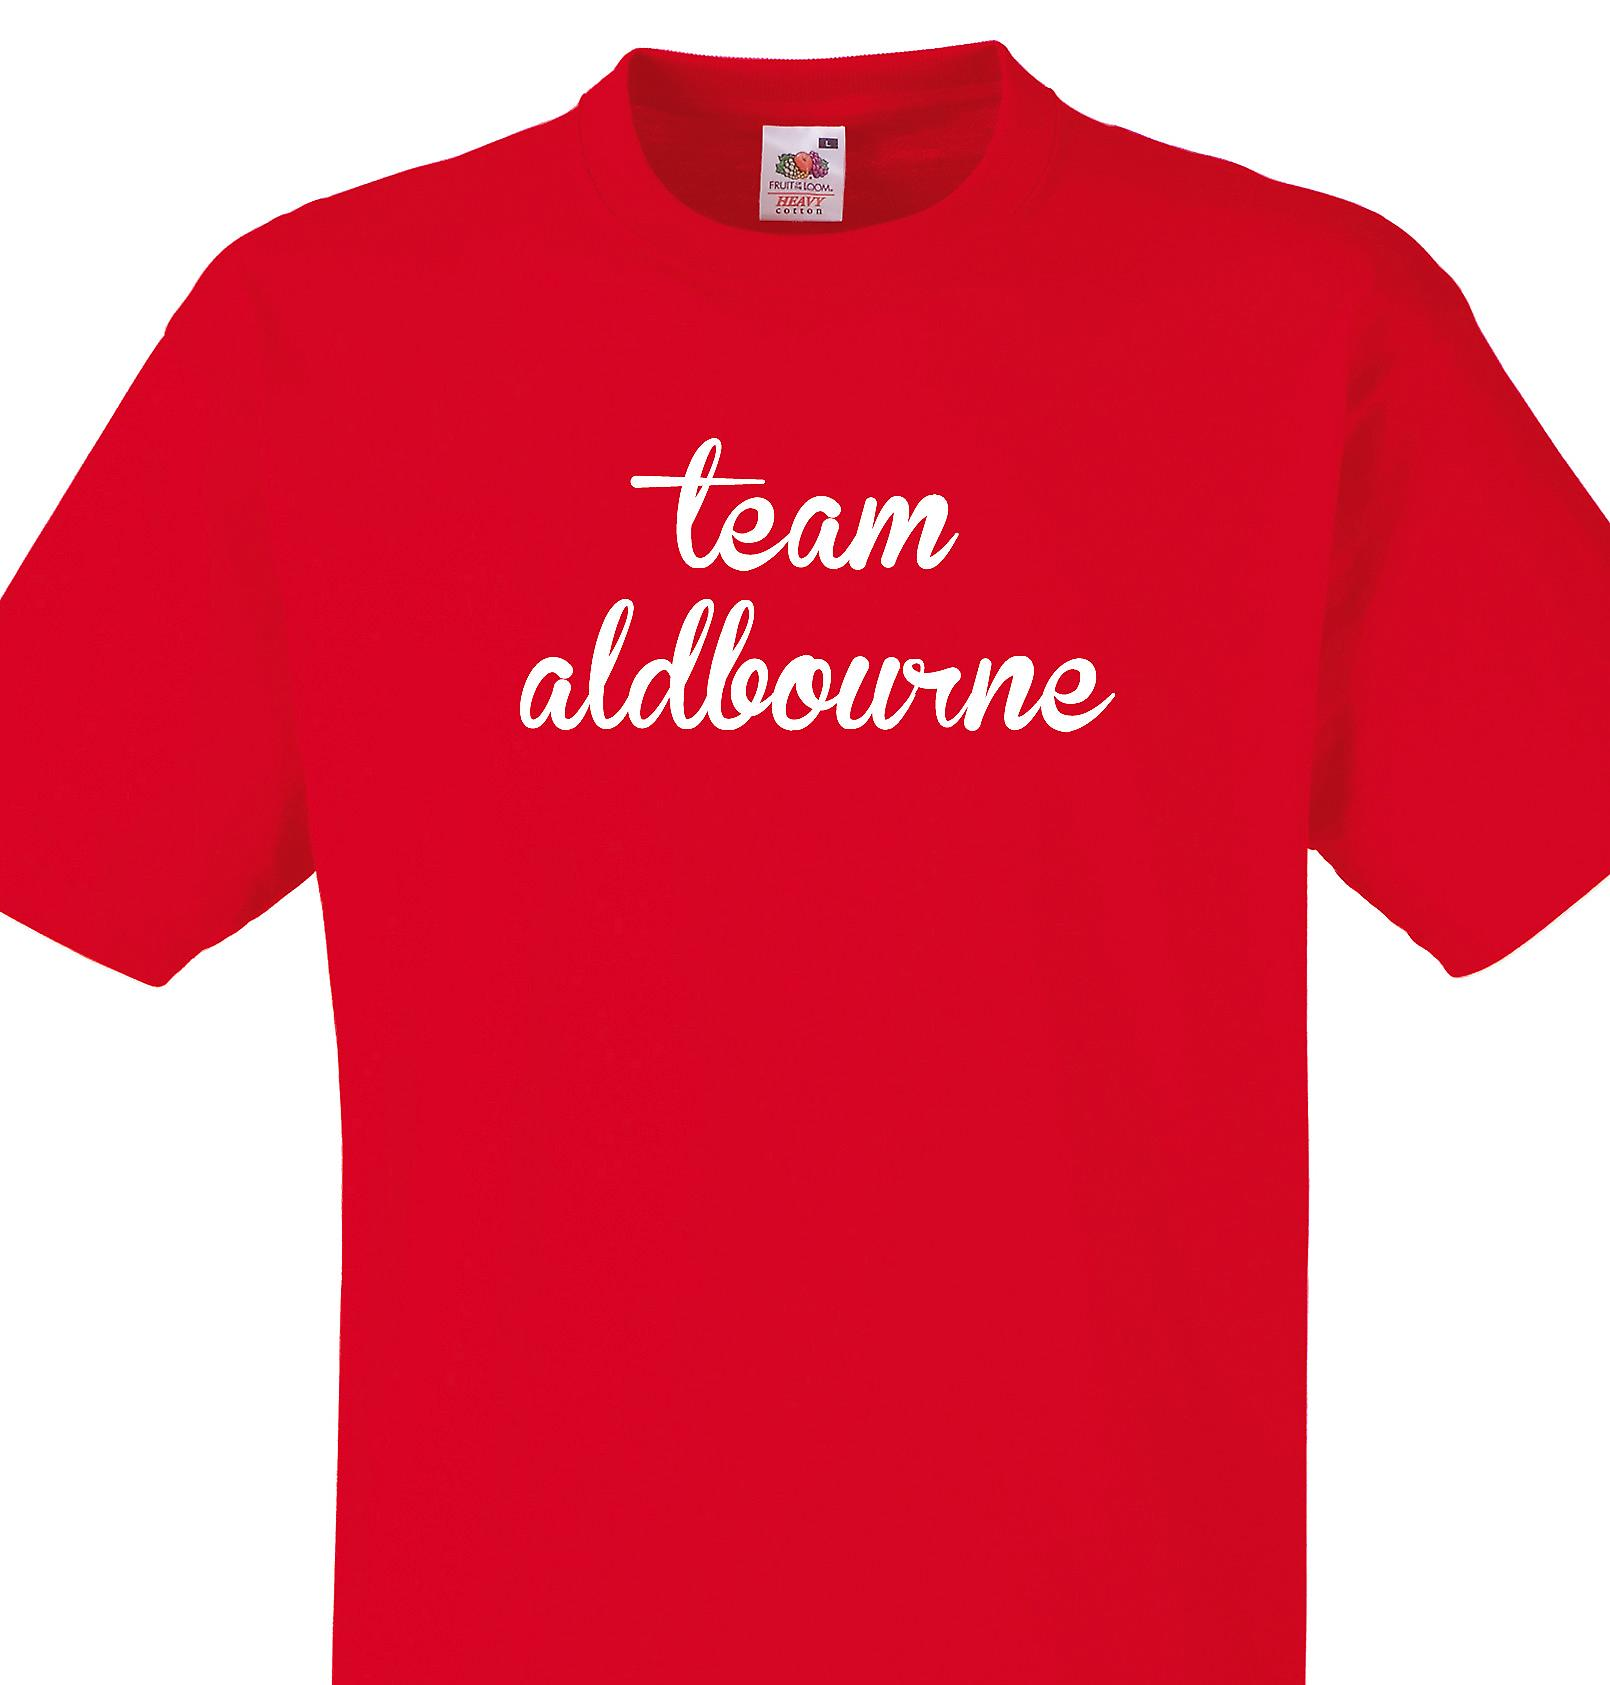 Team Aldbourne Red T shirt